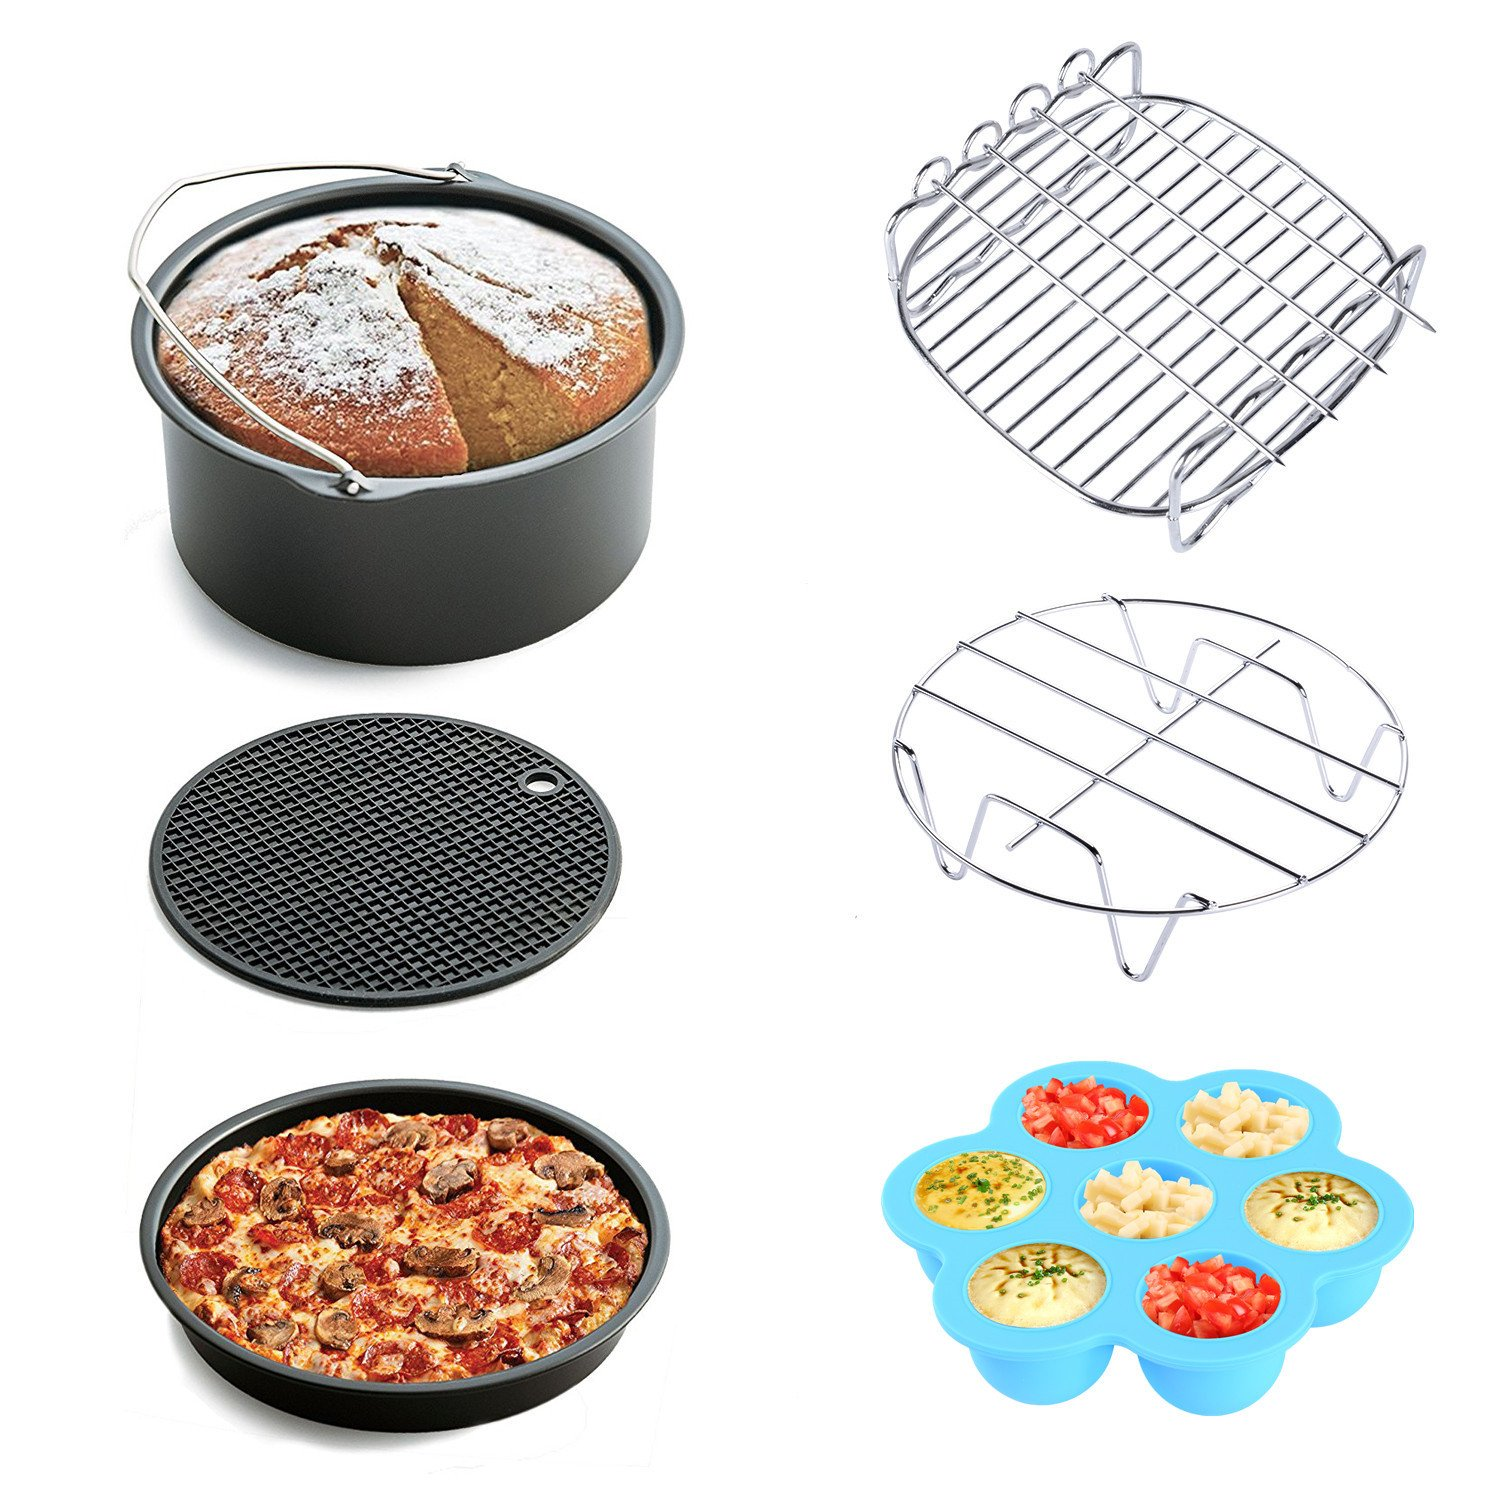 Air Fryer Accessories 6pcs for Gowise Phillips and Cozyna, fit all 3.7QT - 5.3QT with 7 Inch Diameter by KINDEN